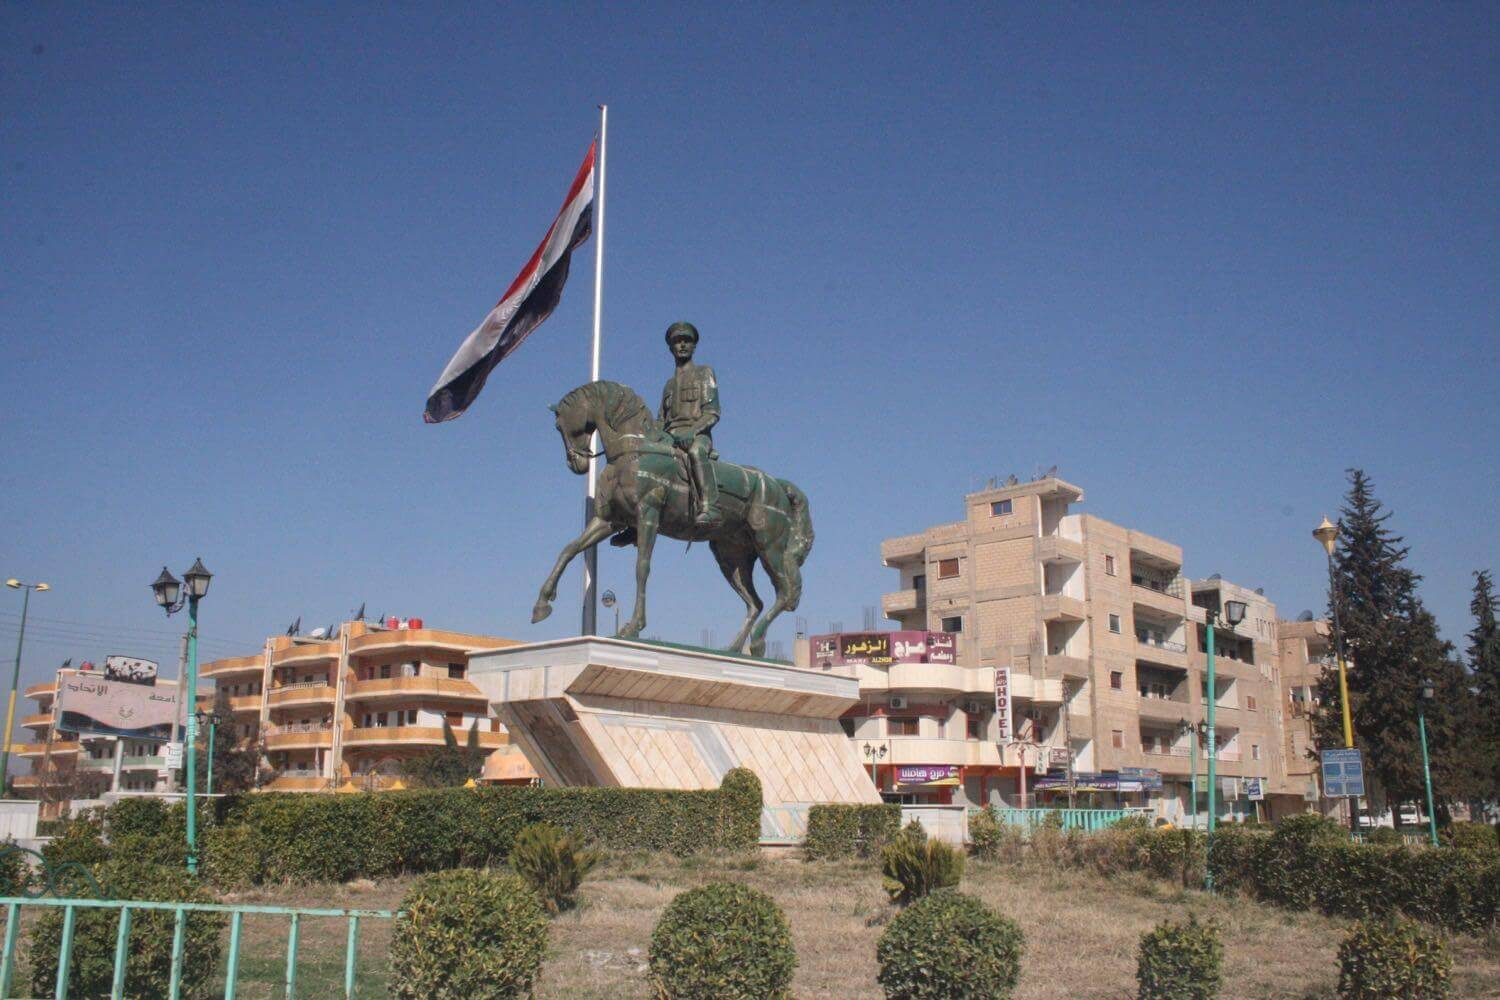 Statue of Basil al-Assad, the deceased brother of the president Qamishli, February 20, 2014